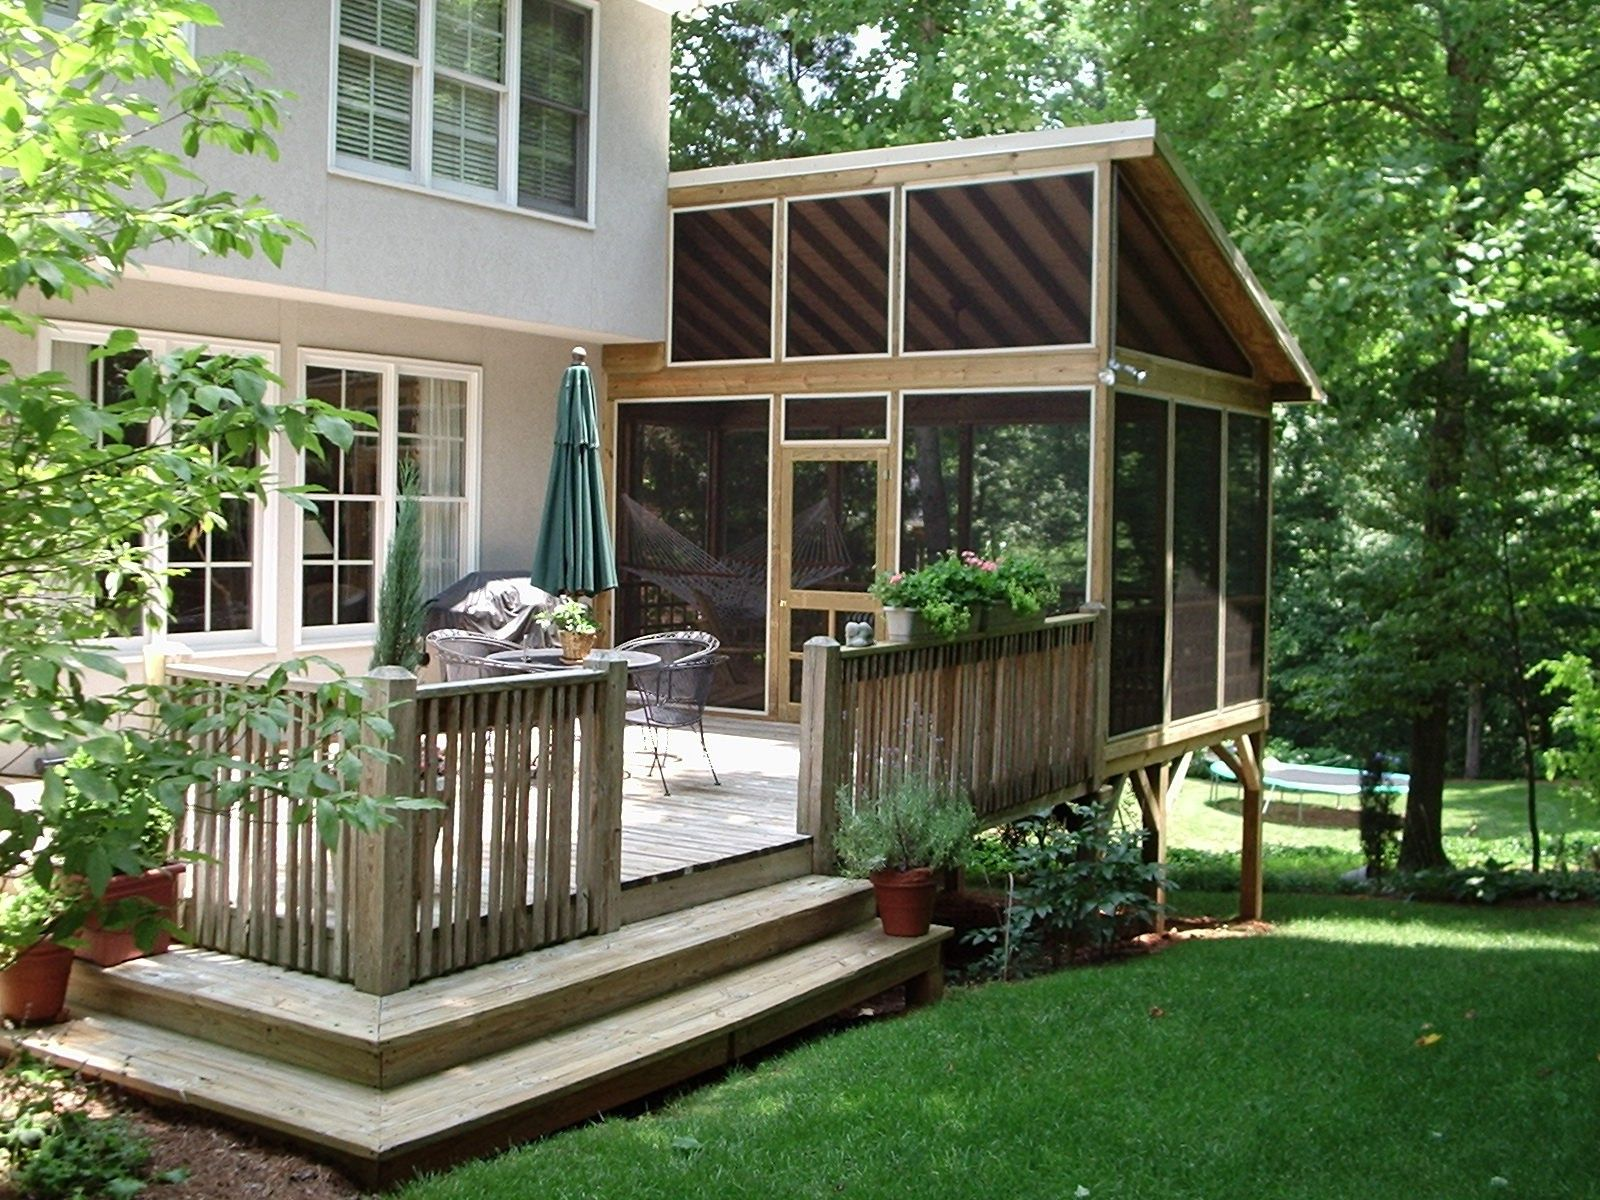 Nice backyard deck ideas to increase your house selling for Backyard deck pictures